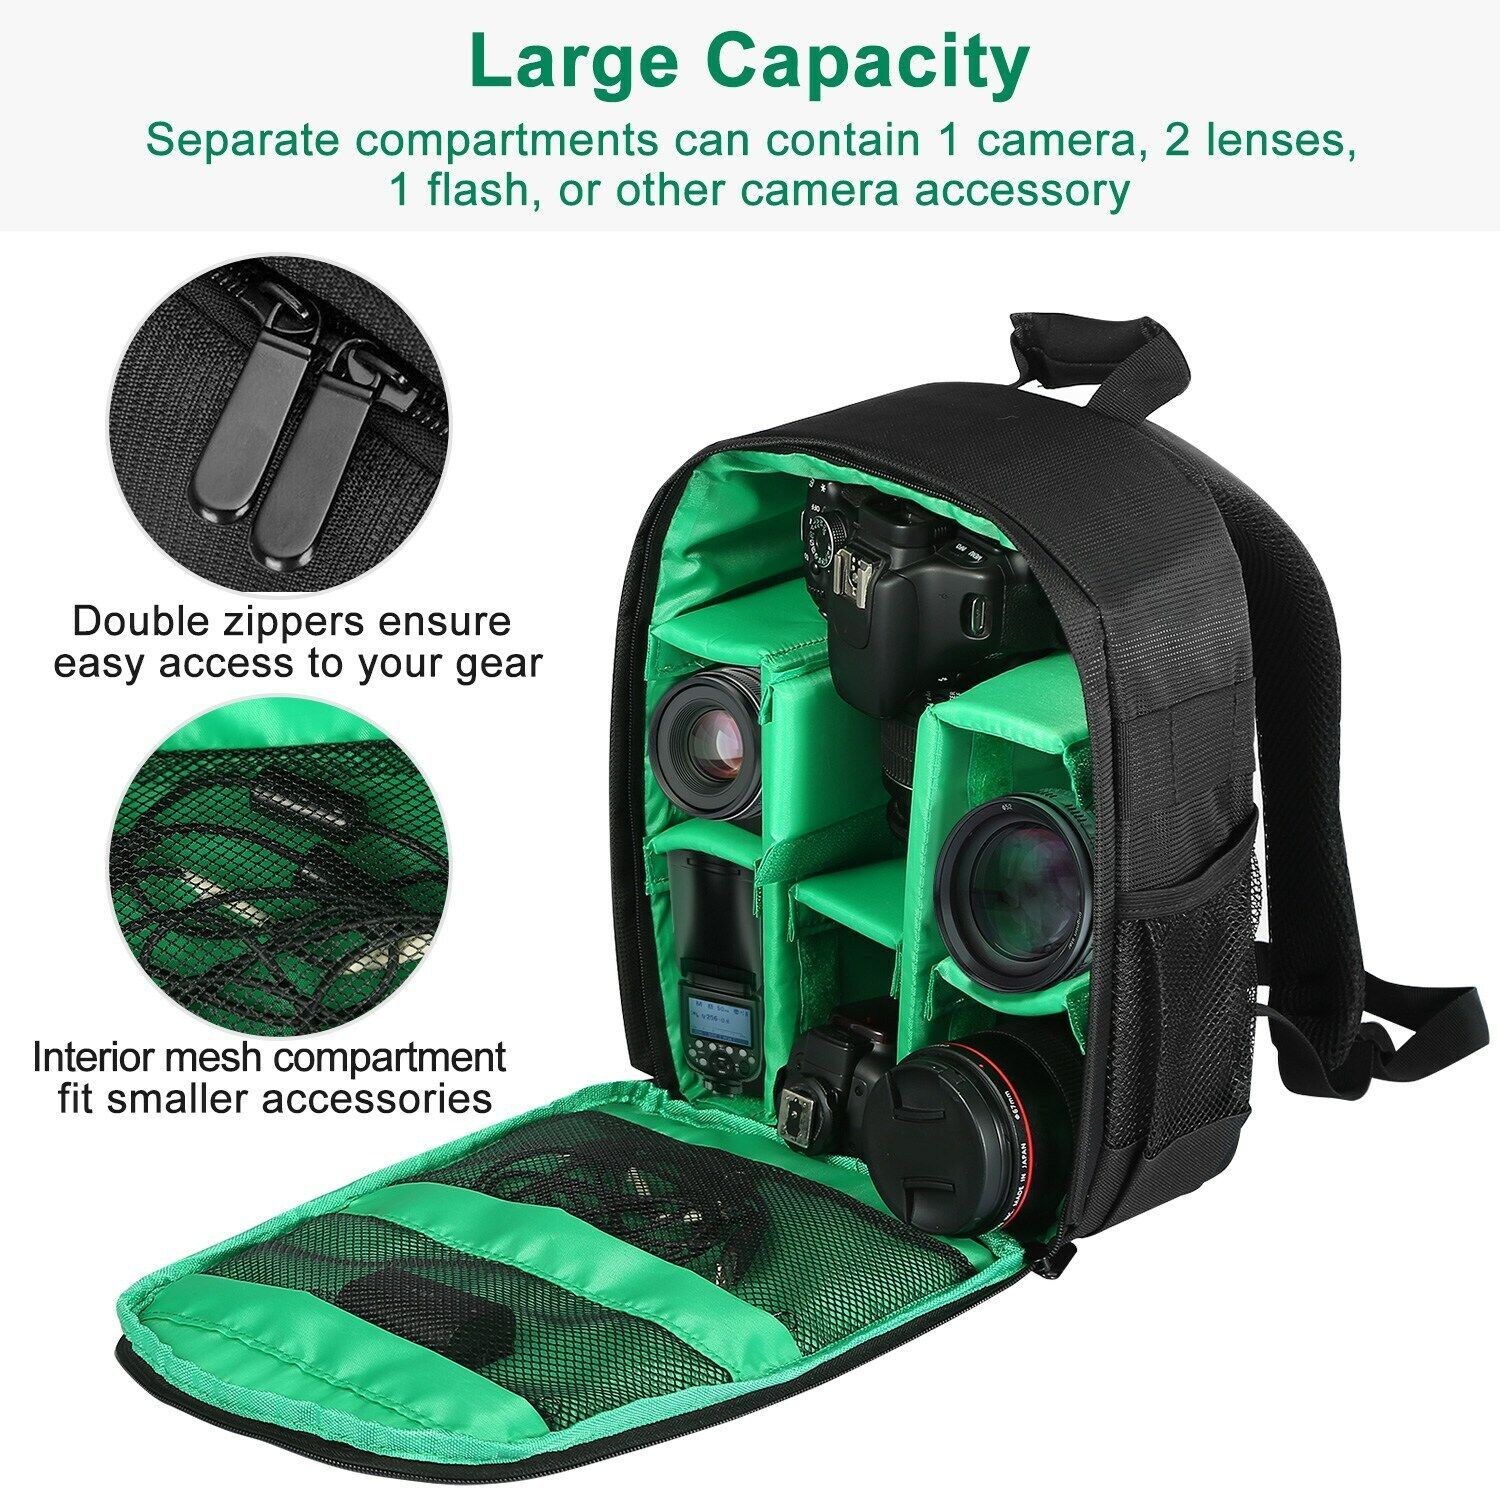 Mihaojianbing Stylish Personality Green Large-Capacity SLR Camera Backpack Professional Waterproof Shock-Proof Camera Bag Lens and Tripod Accessories High-Capacity Storage-30 X 19 X 45CM Pratical